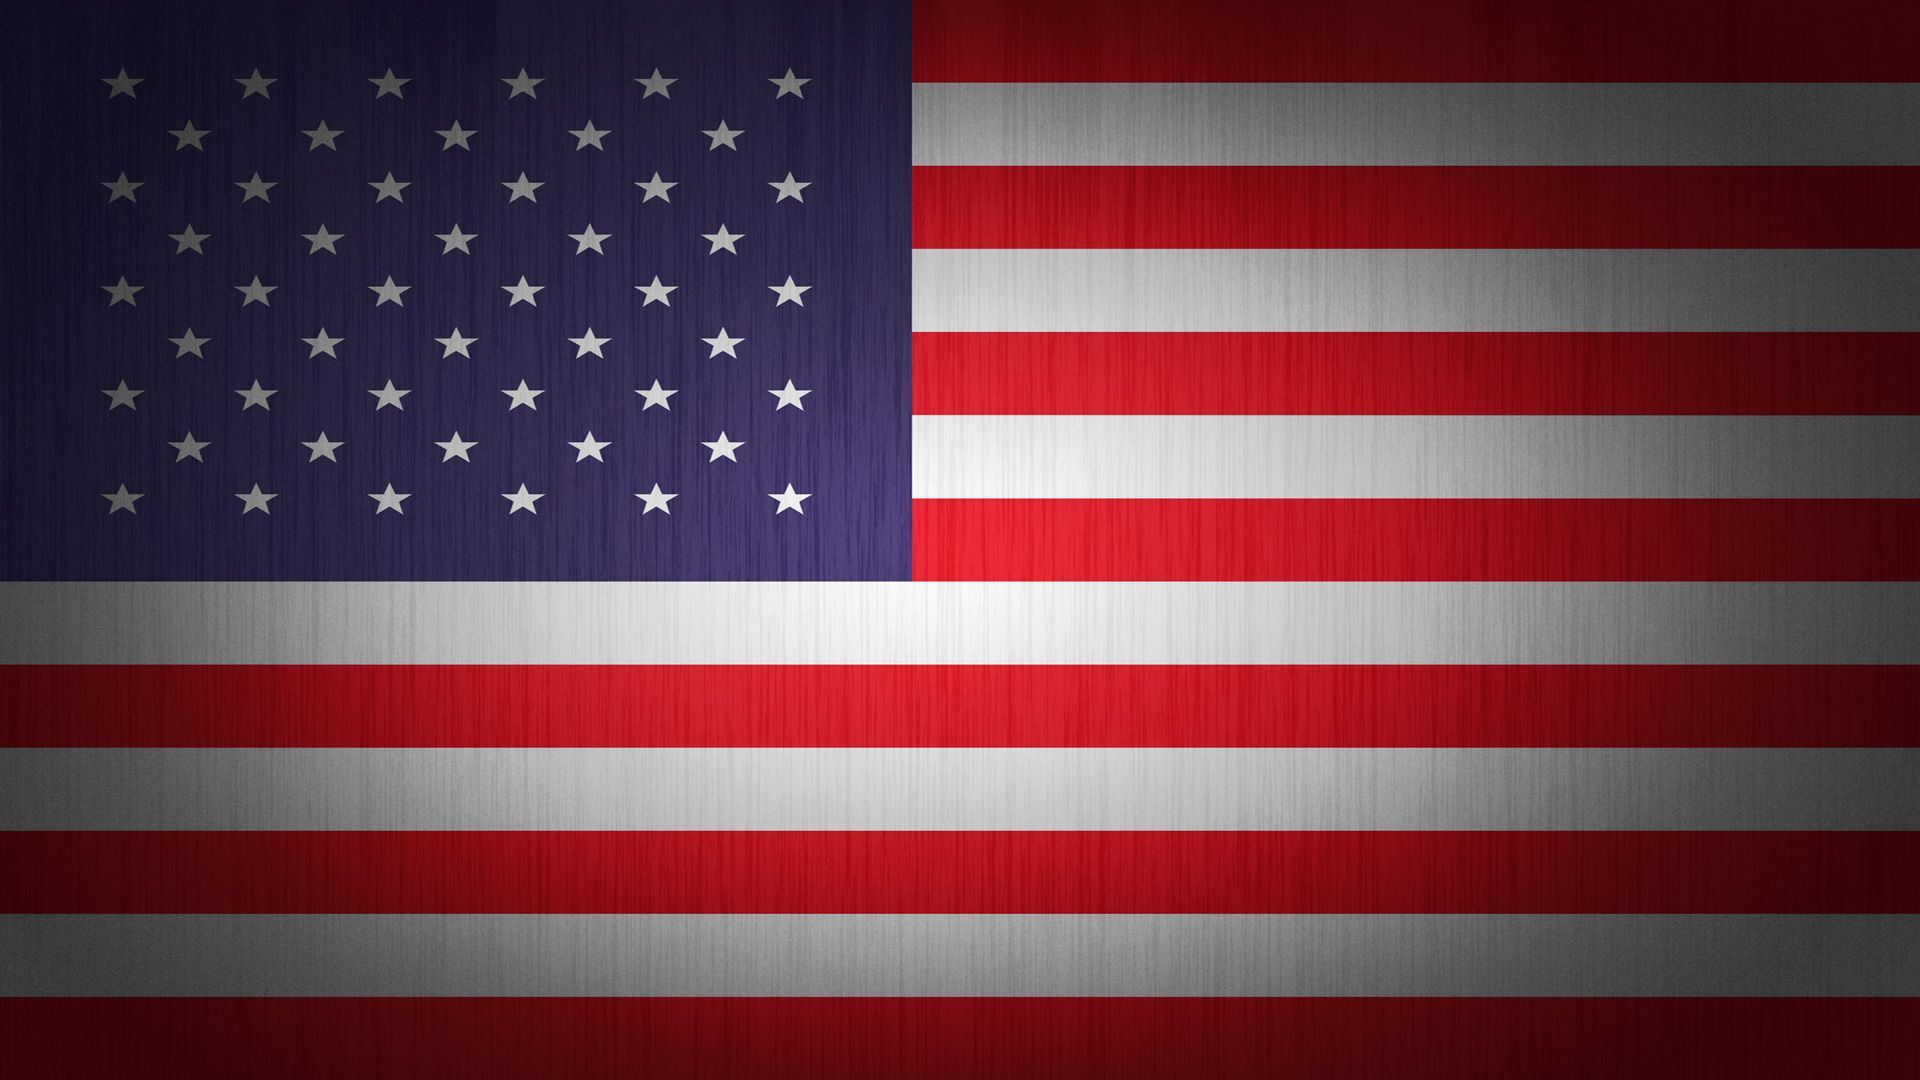 Old Glory. Cool Flags Usa flag wallpaper, American